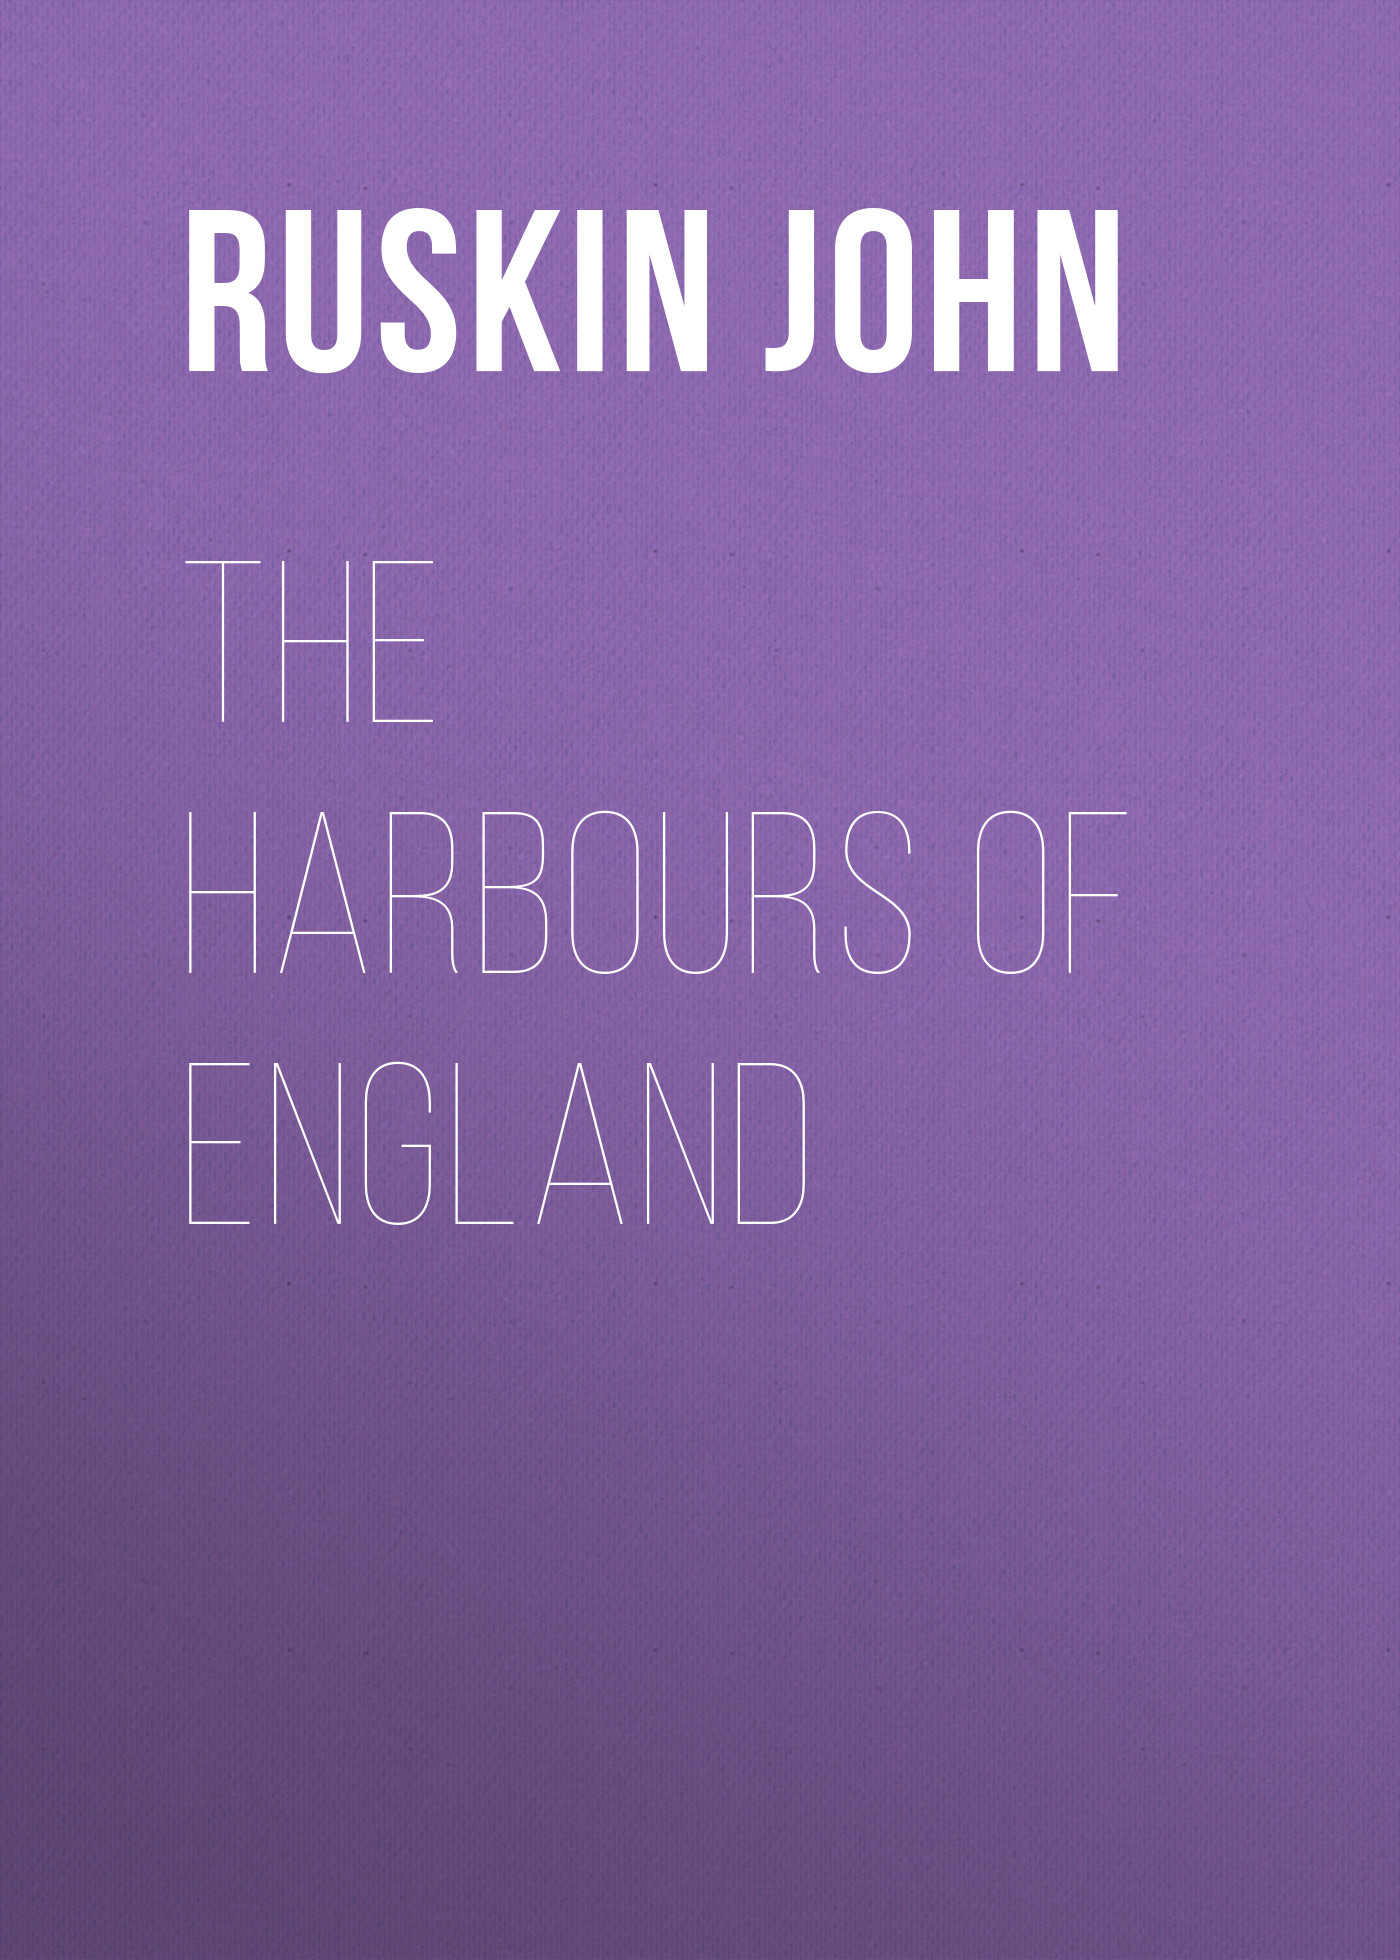 Ruskin John The Harbours of England john ruskin the thoughts of john ruskin